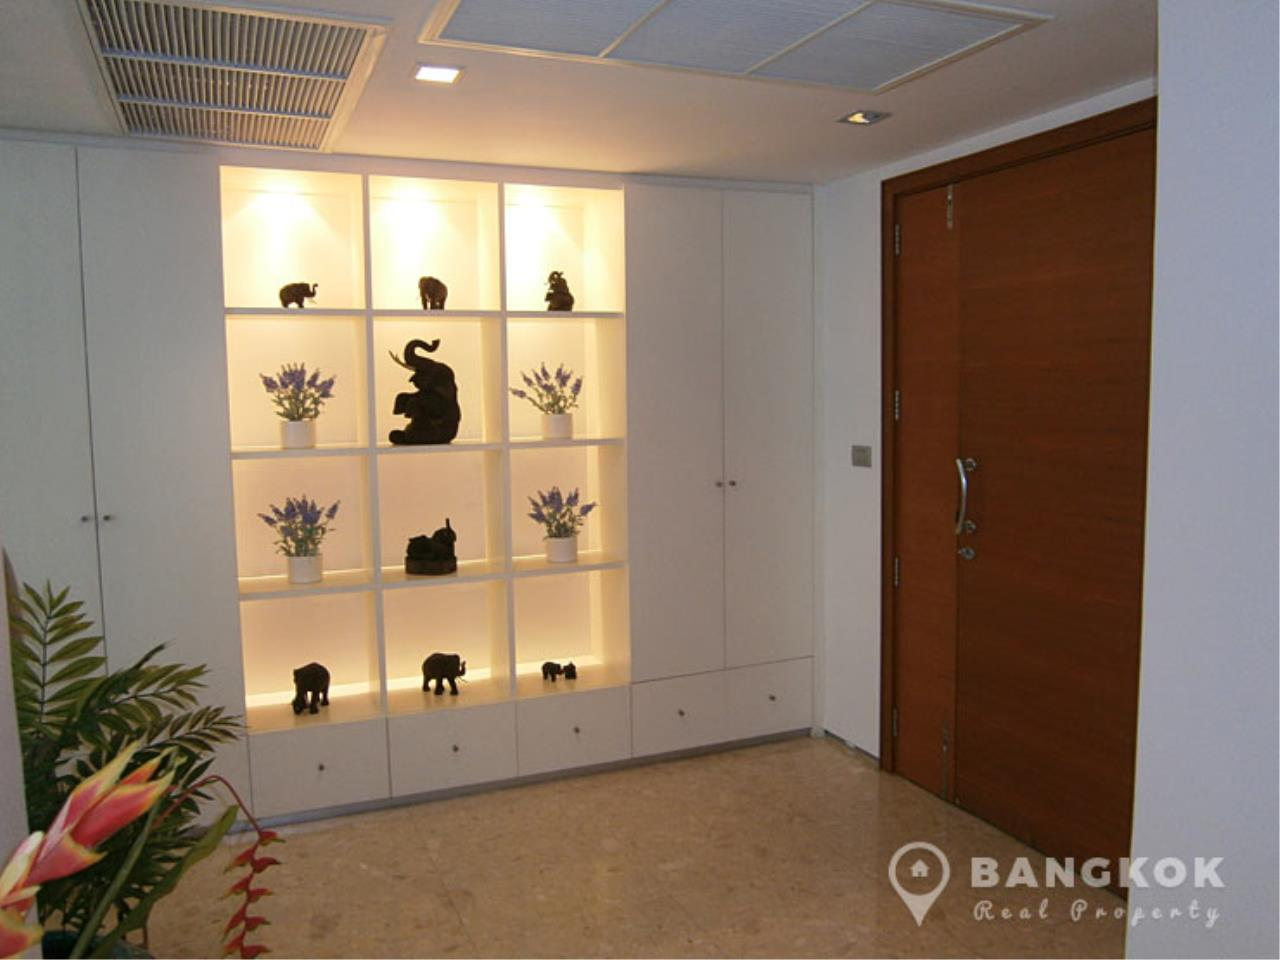 Bangkok Real Property Agency's Ficus Lane | A Fabulous Spacious 3 Bed 4 Bath Duplex near BTS 35